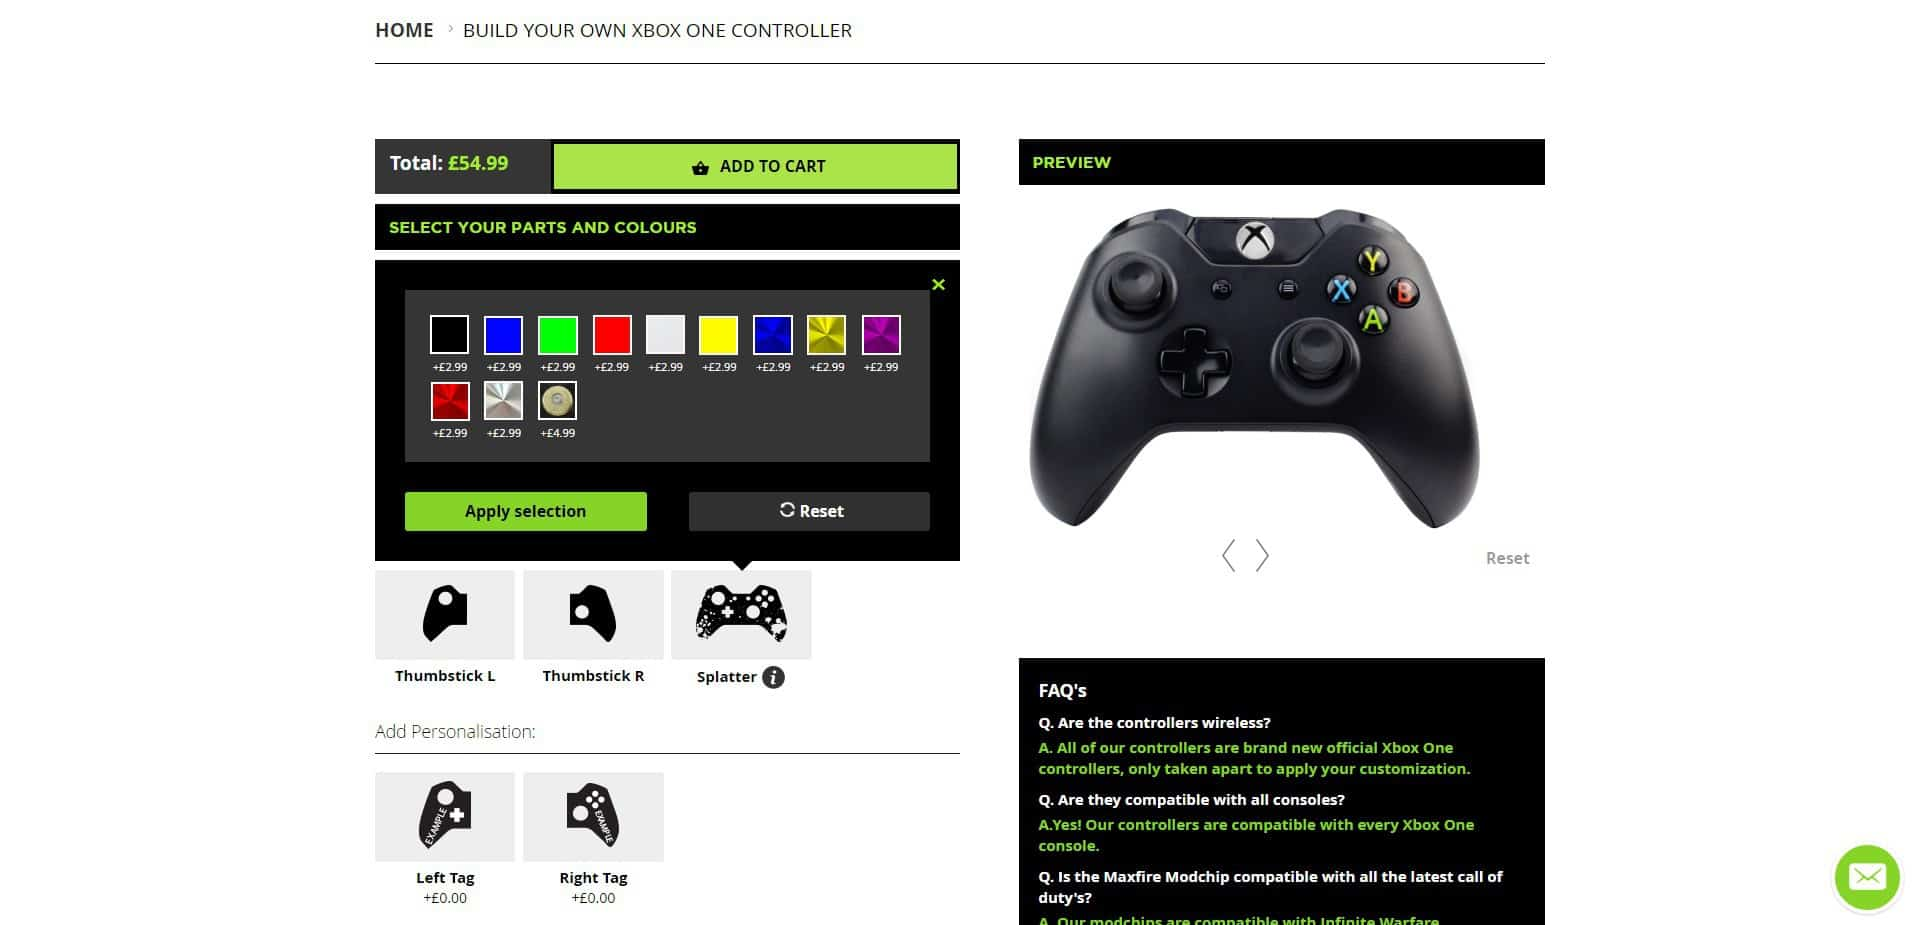 abxy-buttons Controller Modz Modded Xbox One Controller Review